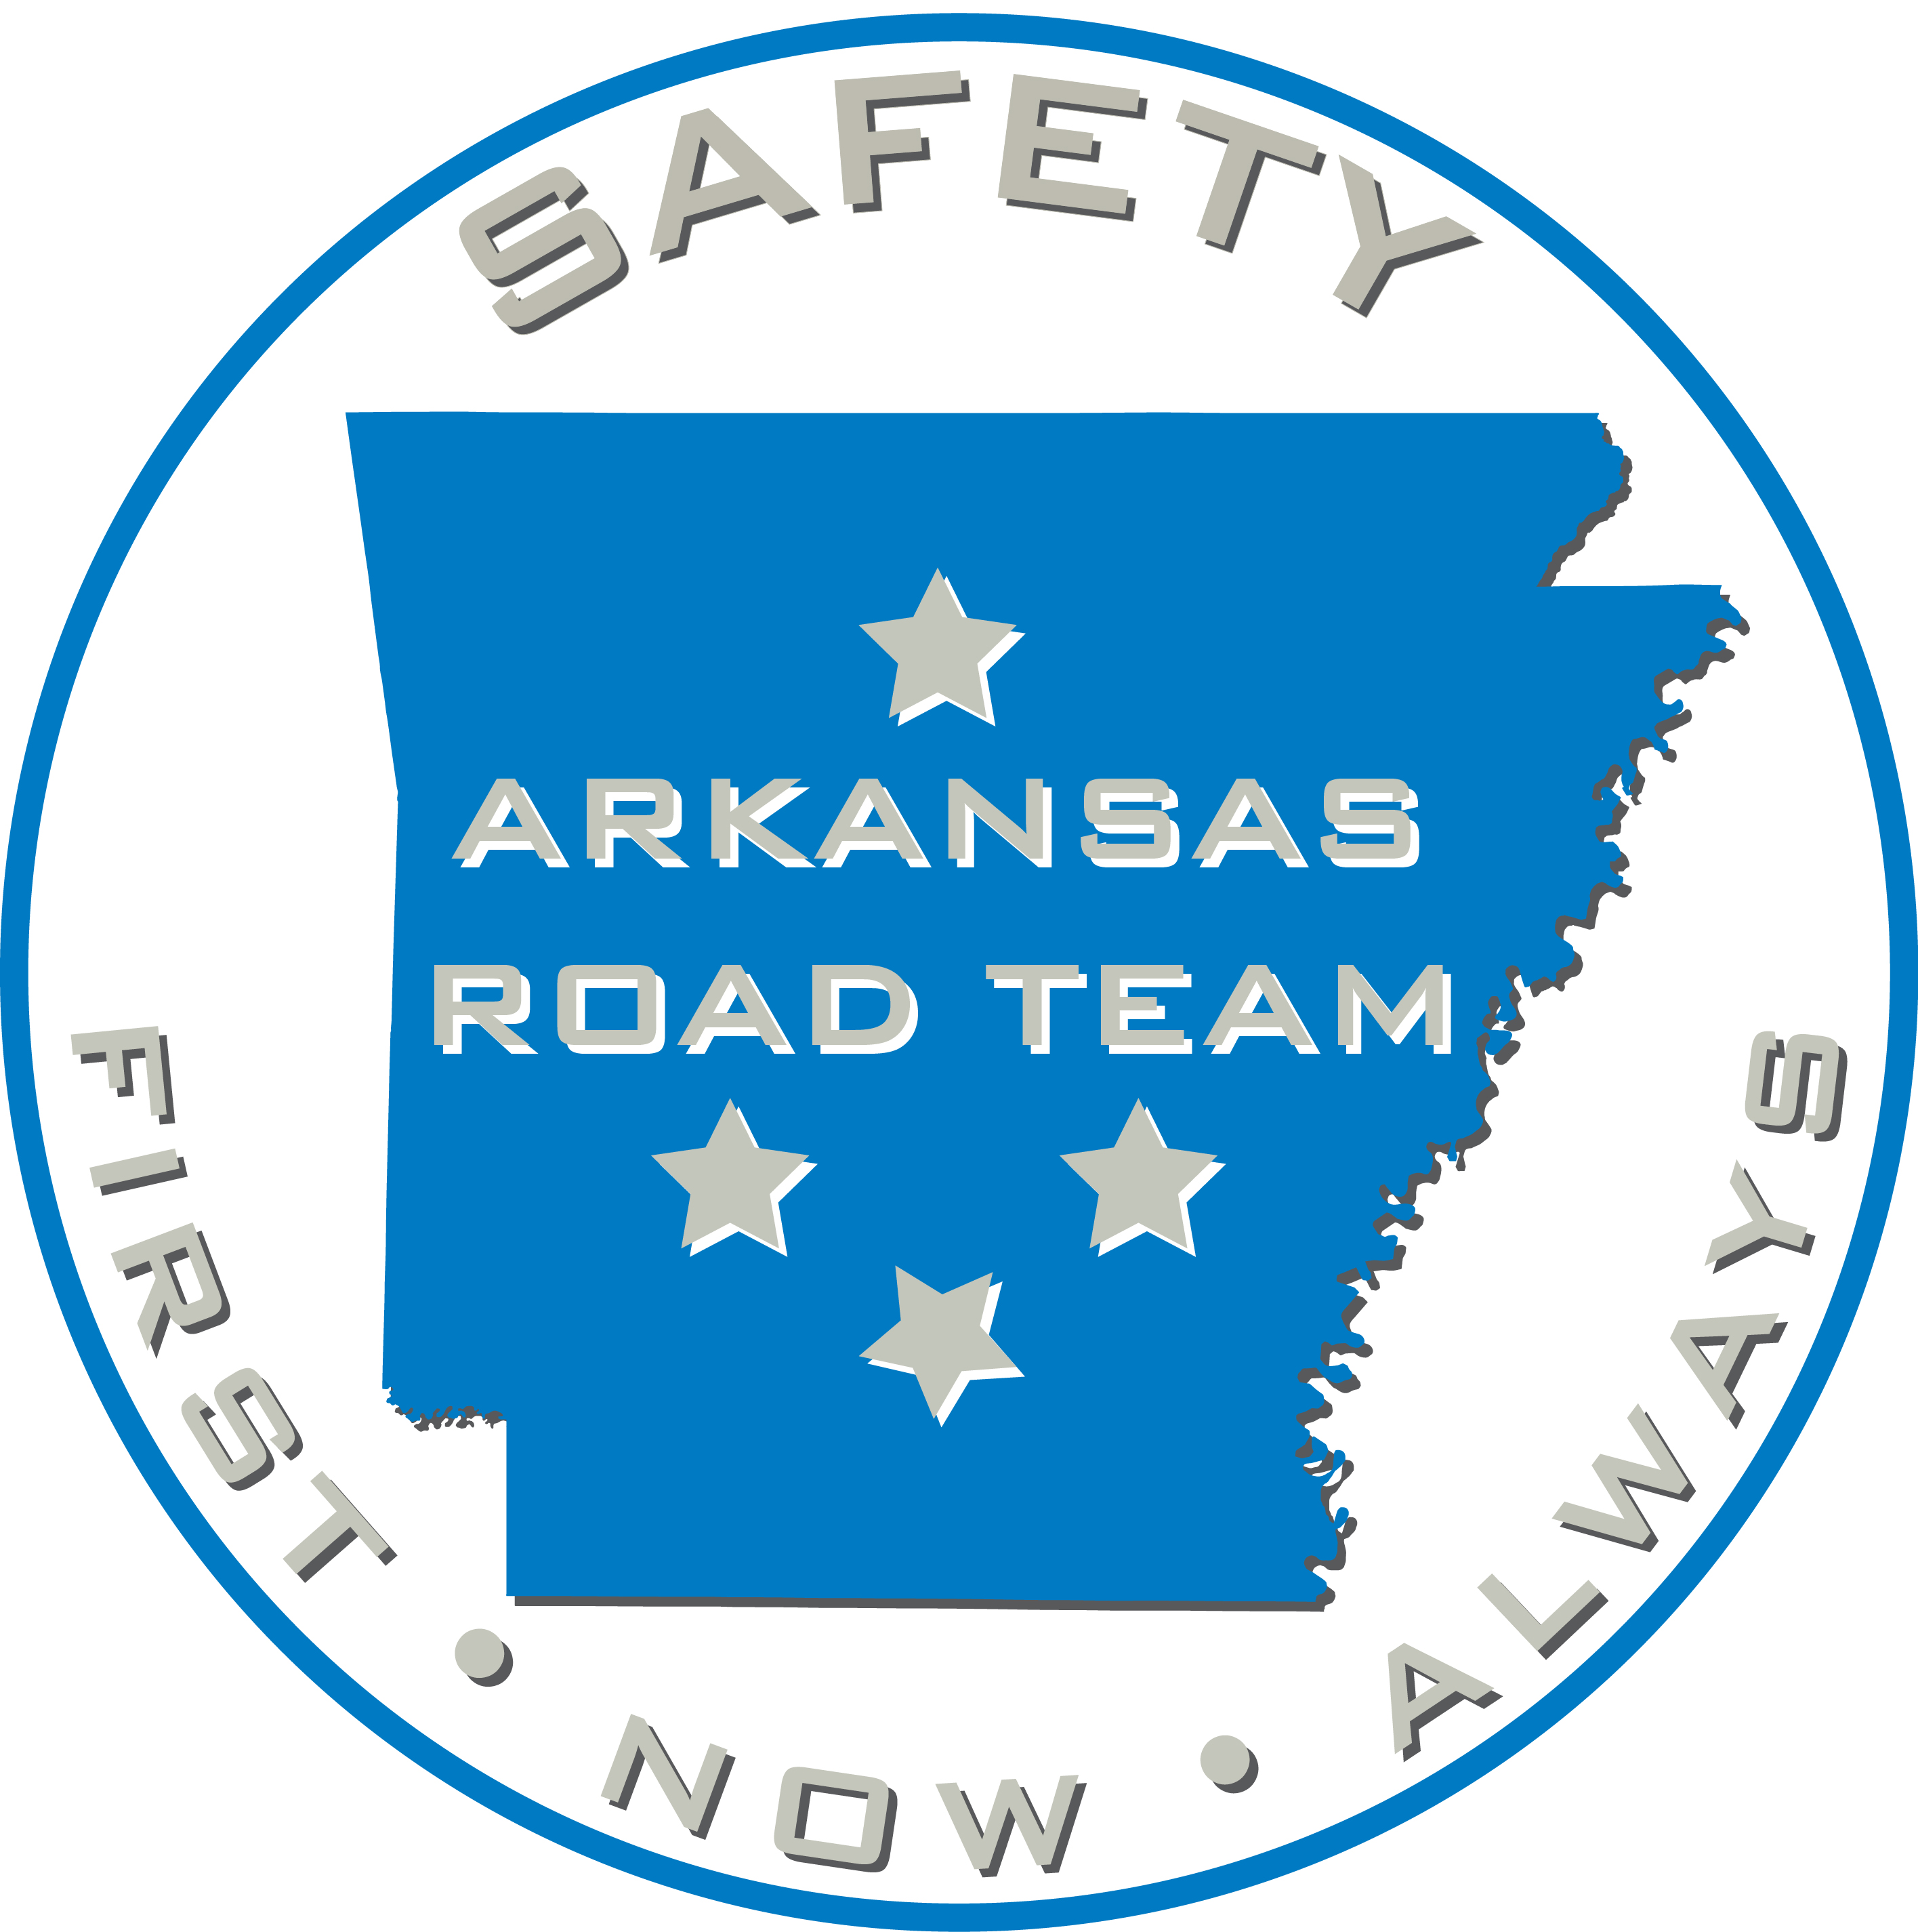 Arkansas Road Team Professional Trucking Drivers